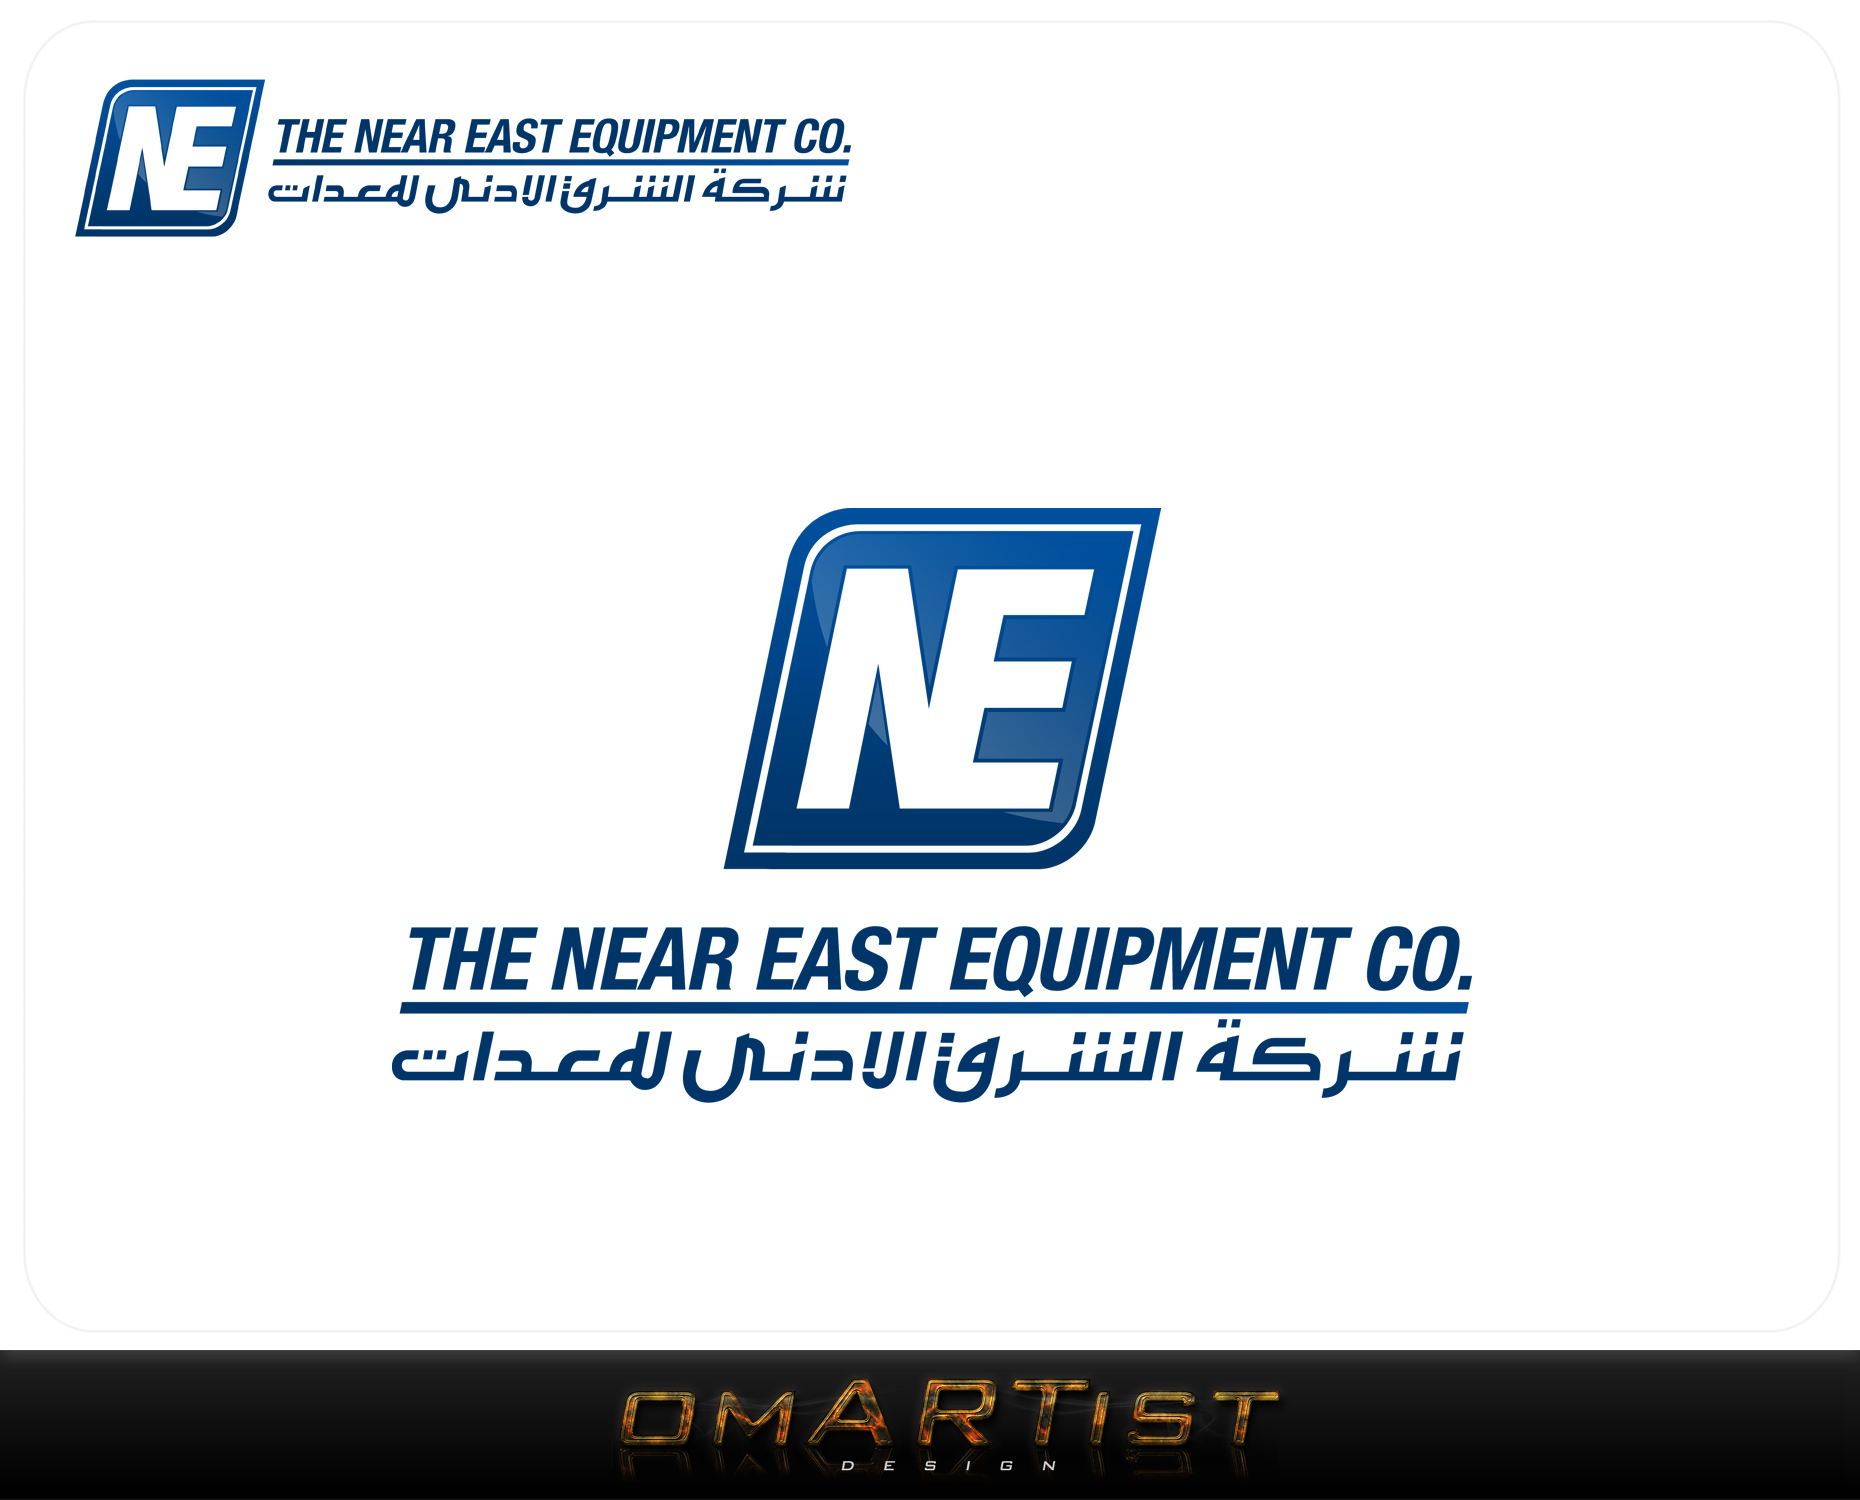 Logo Design by omARTist - Entry No. 117 in the Logo Design Contest Imaginative Logo Design for The Near East Equipment Co..